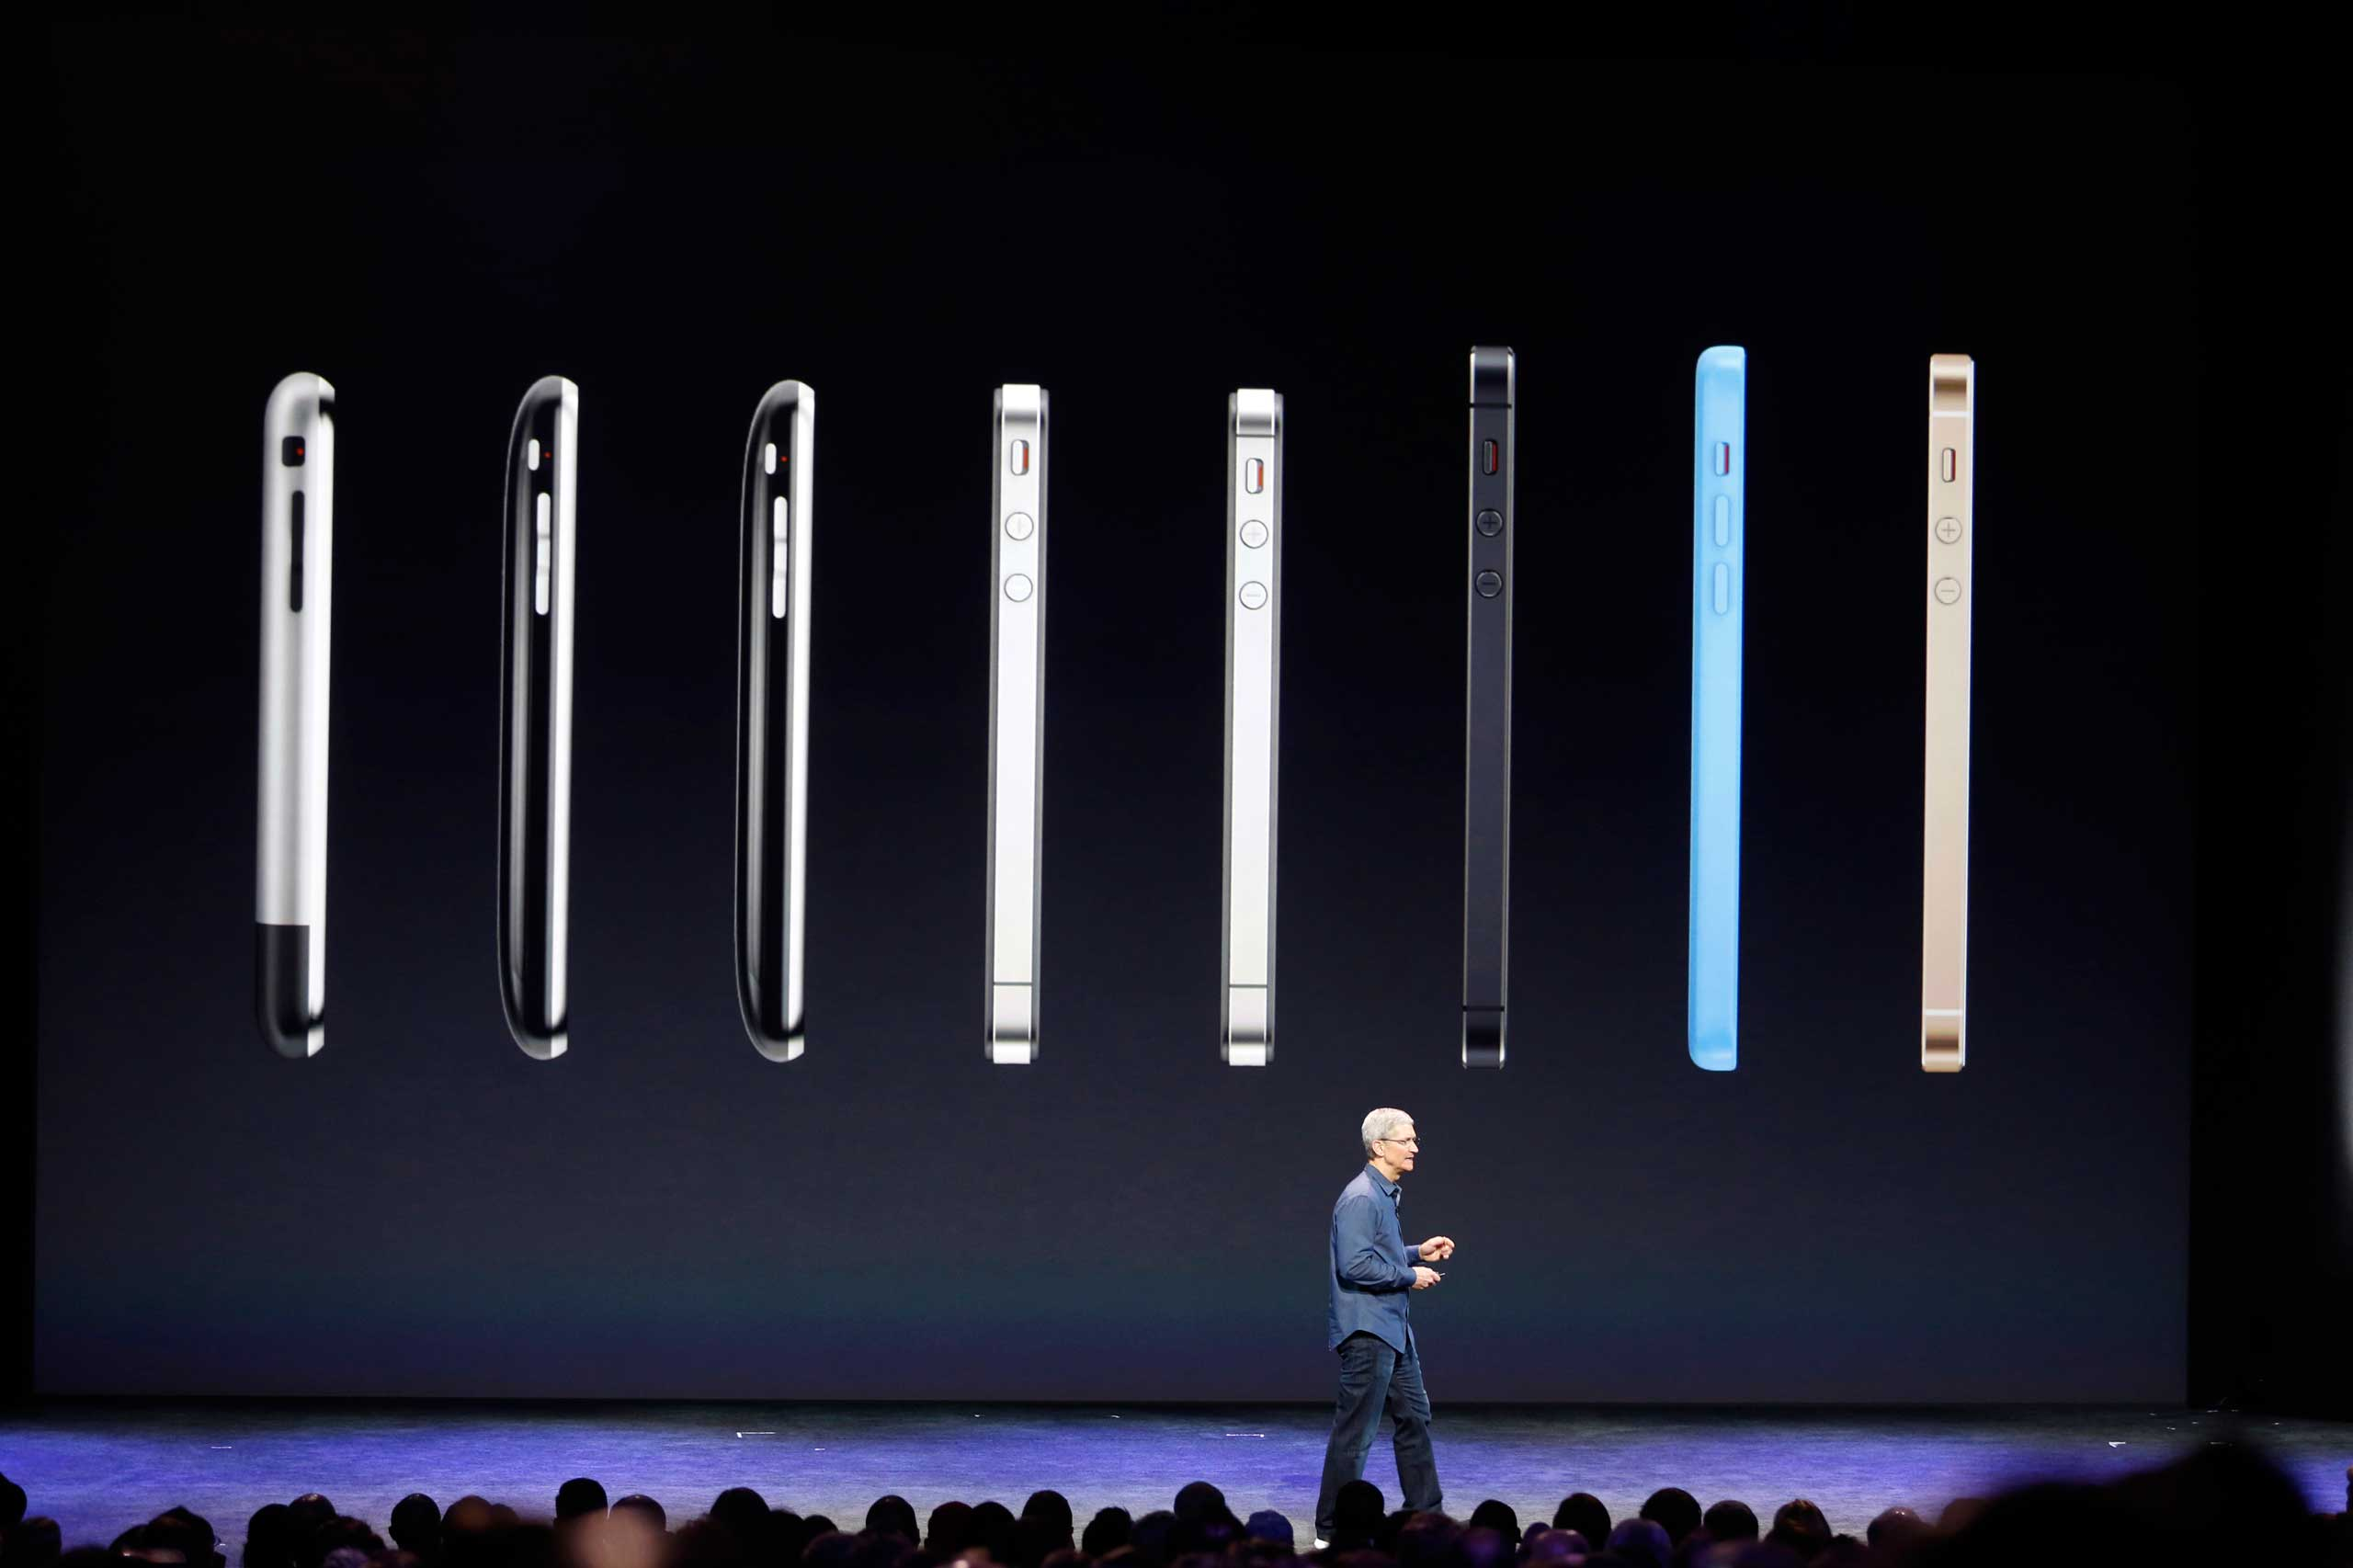 Apple CEO Tim Cook speaks in front of a row of iPhones during an Apple event at the Flint Center in Cupertino, Calif. on September 9, 2014.